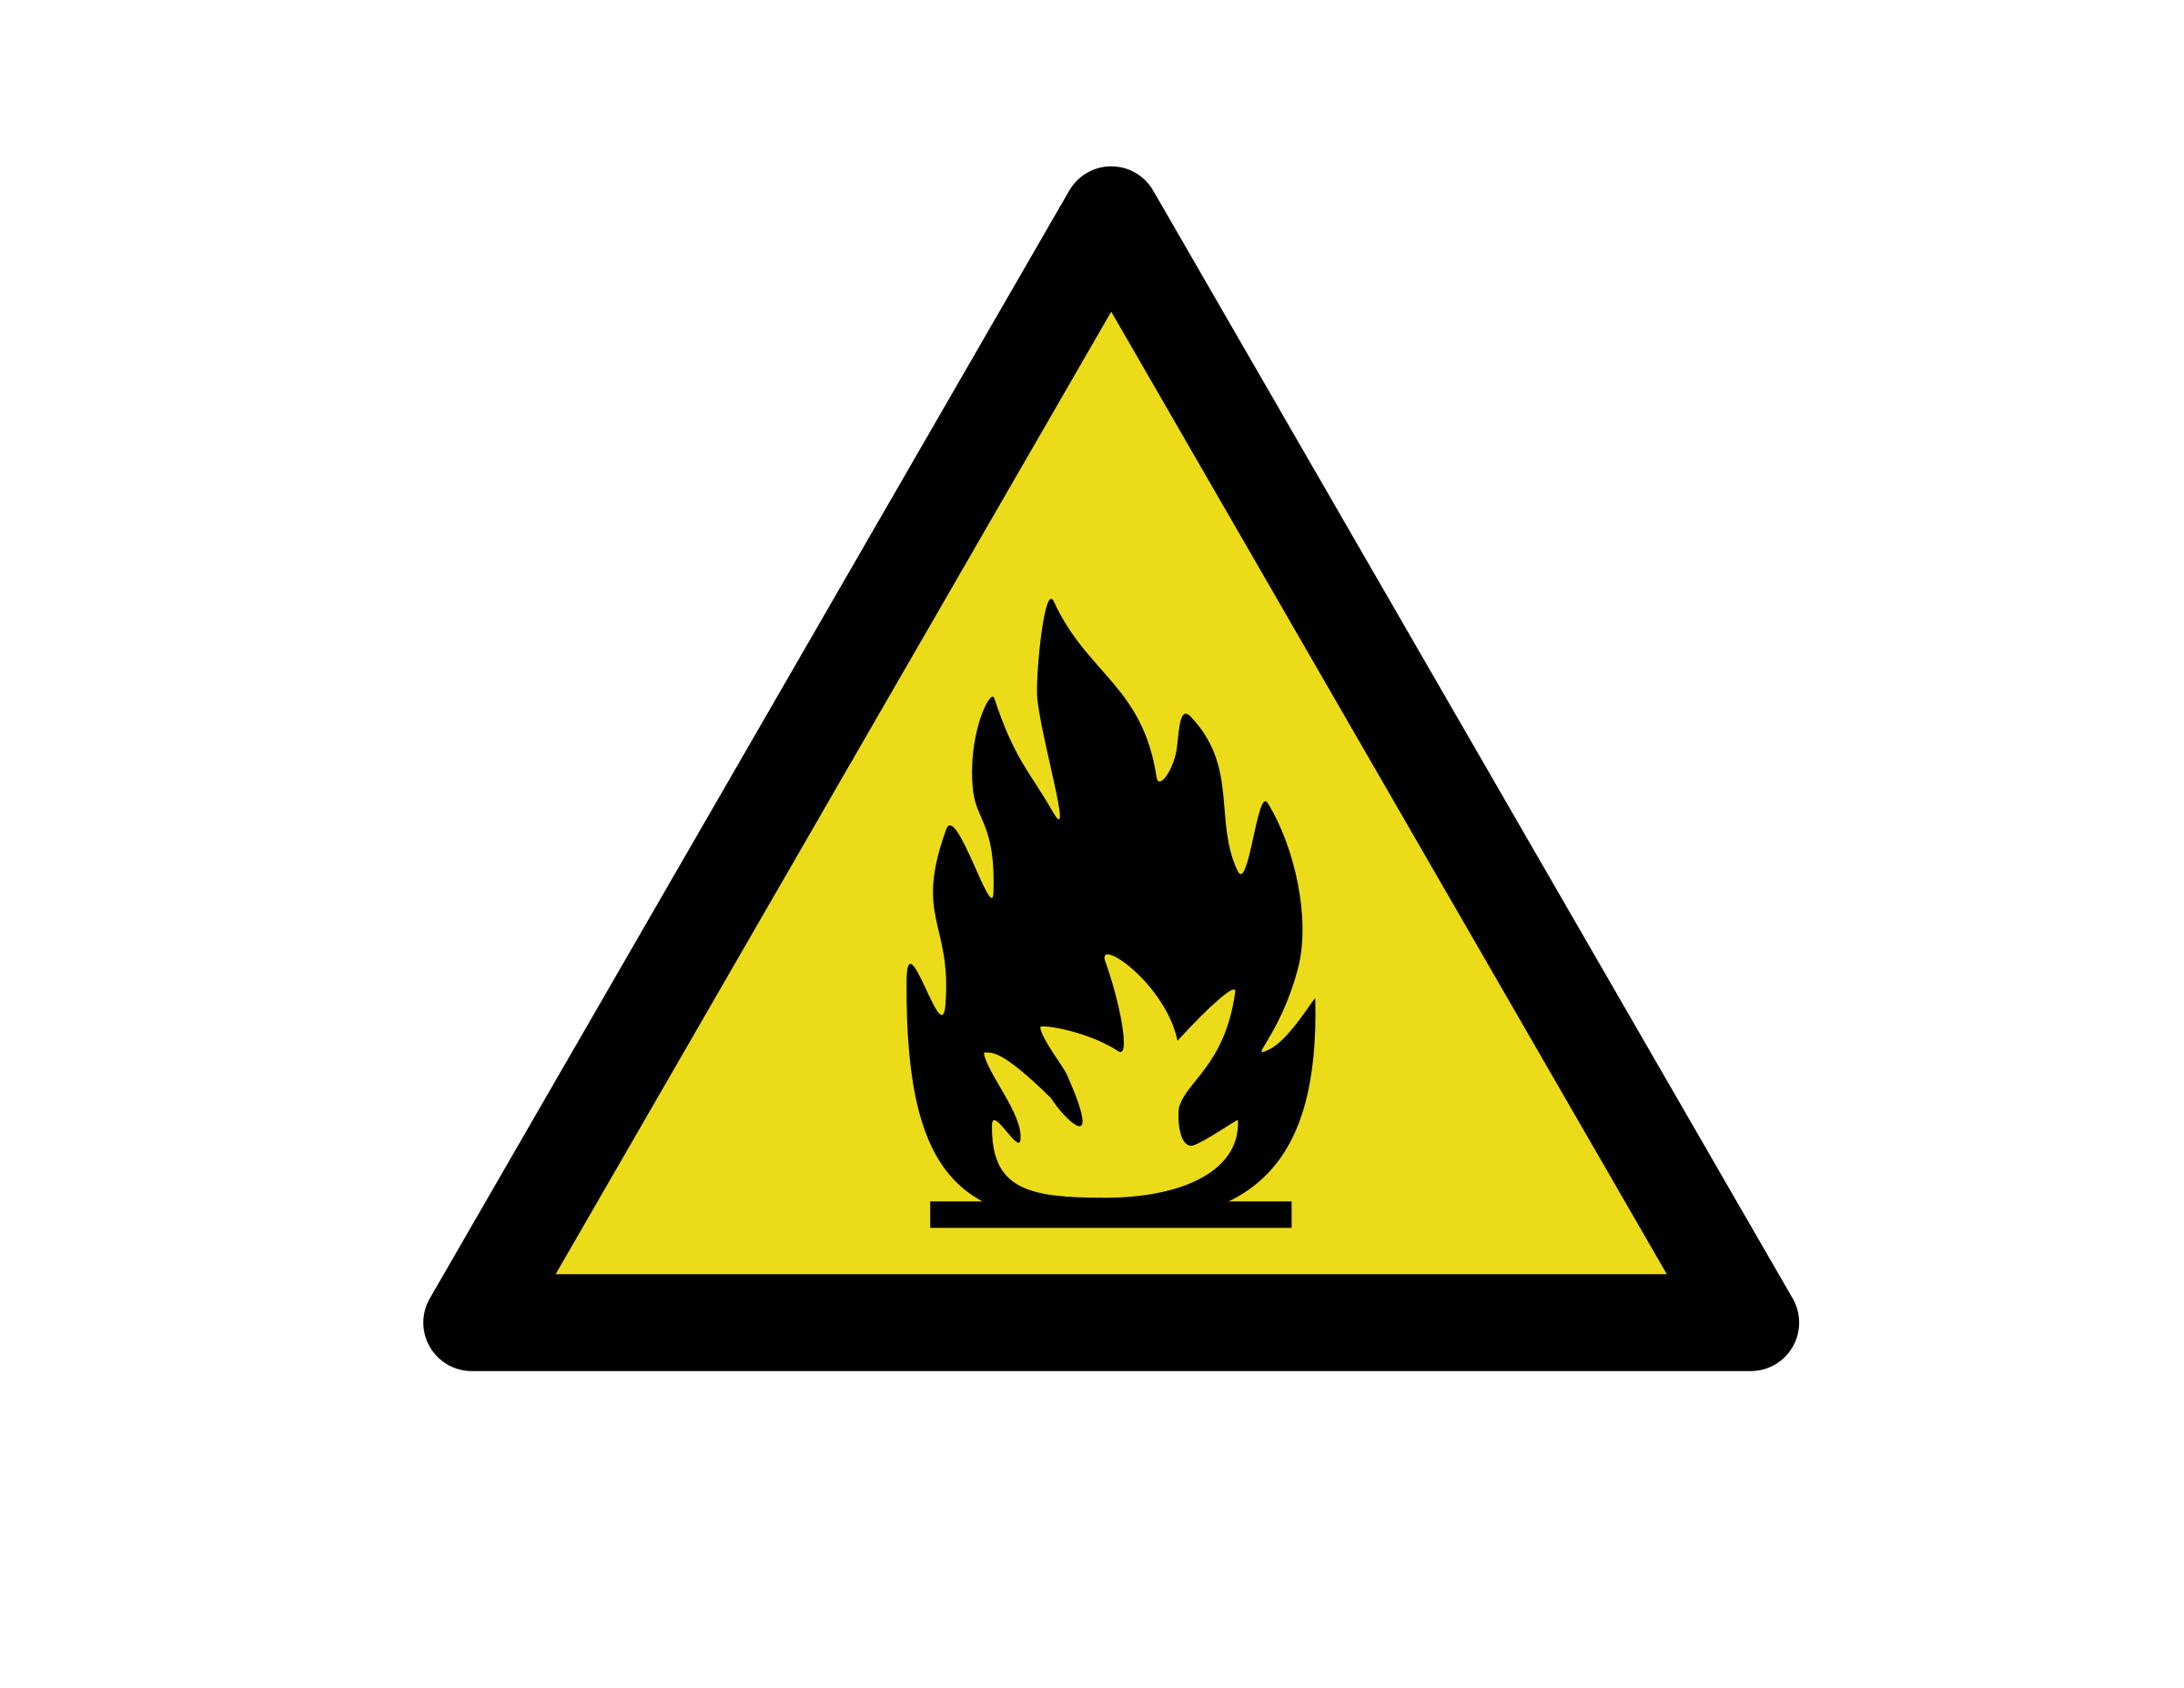 Fire Warning by D4v1d